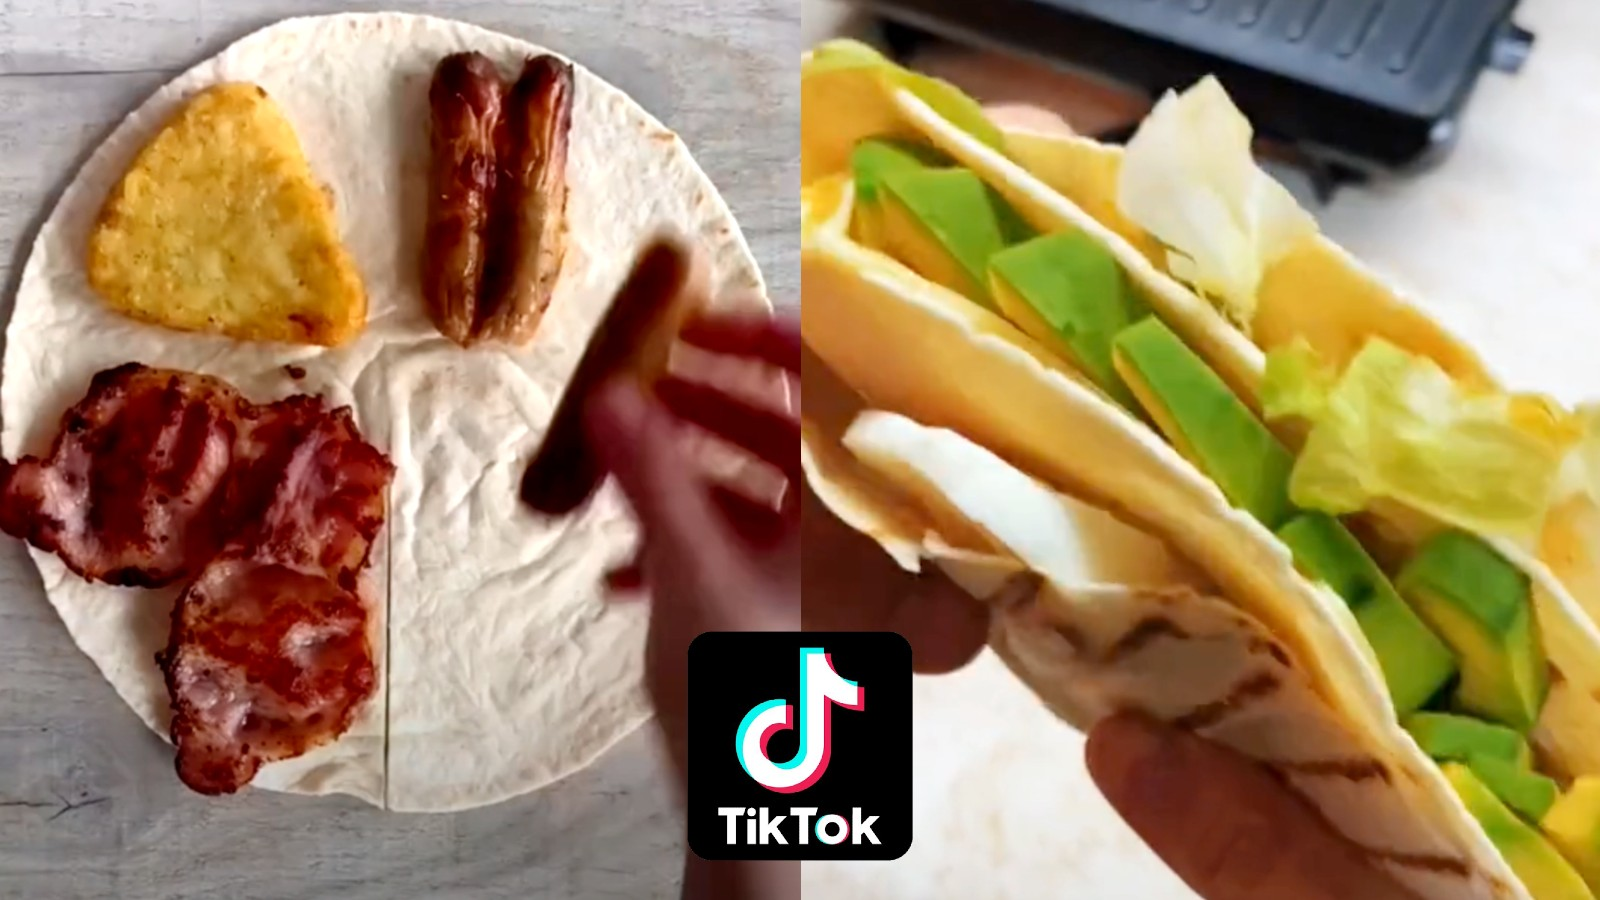 Tortilla unfolded and folded next to each other with the TikTok logo